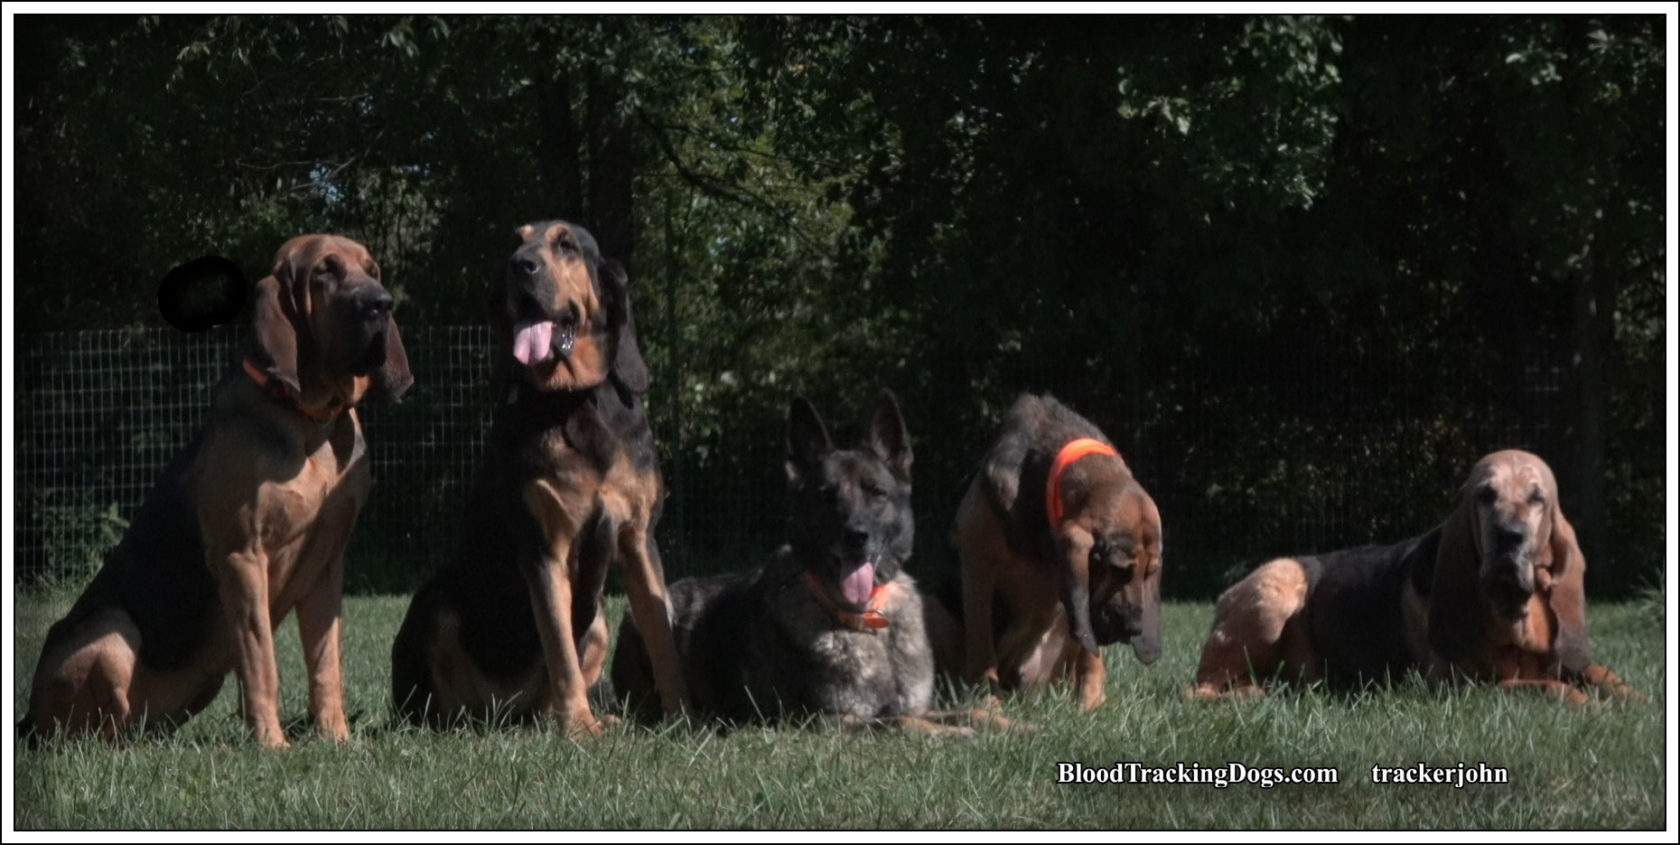 trackerjohn's dogs: Jesse-Jane, Hayley, Elle, Holly, and Jesse